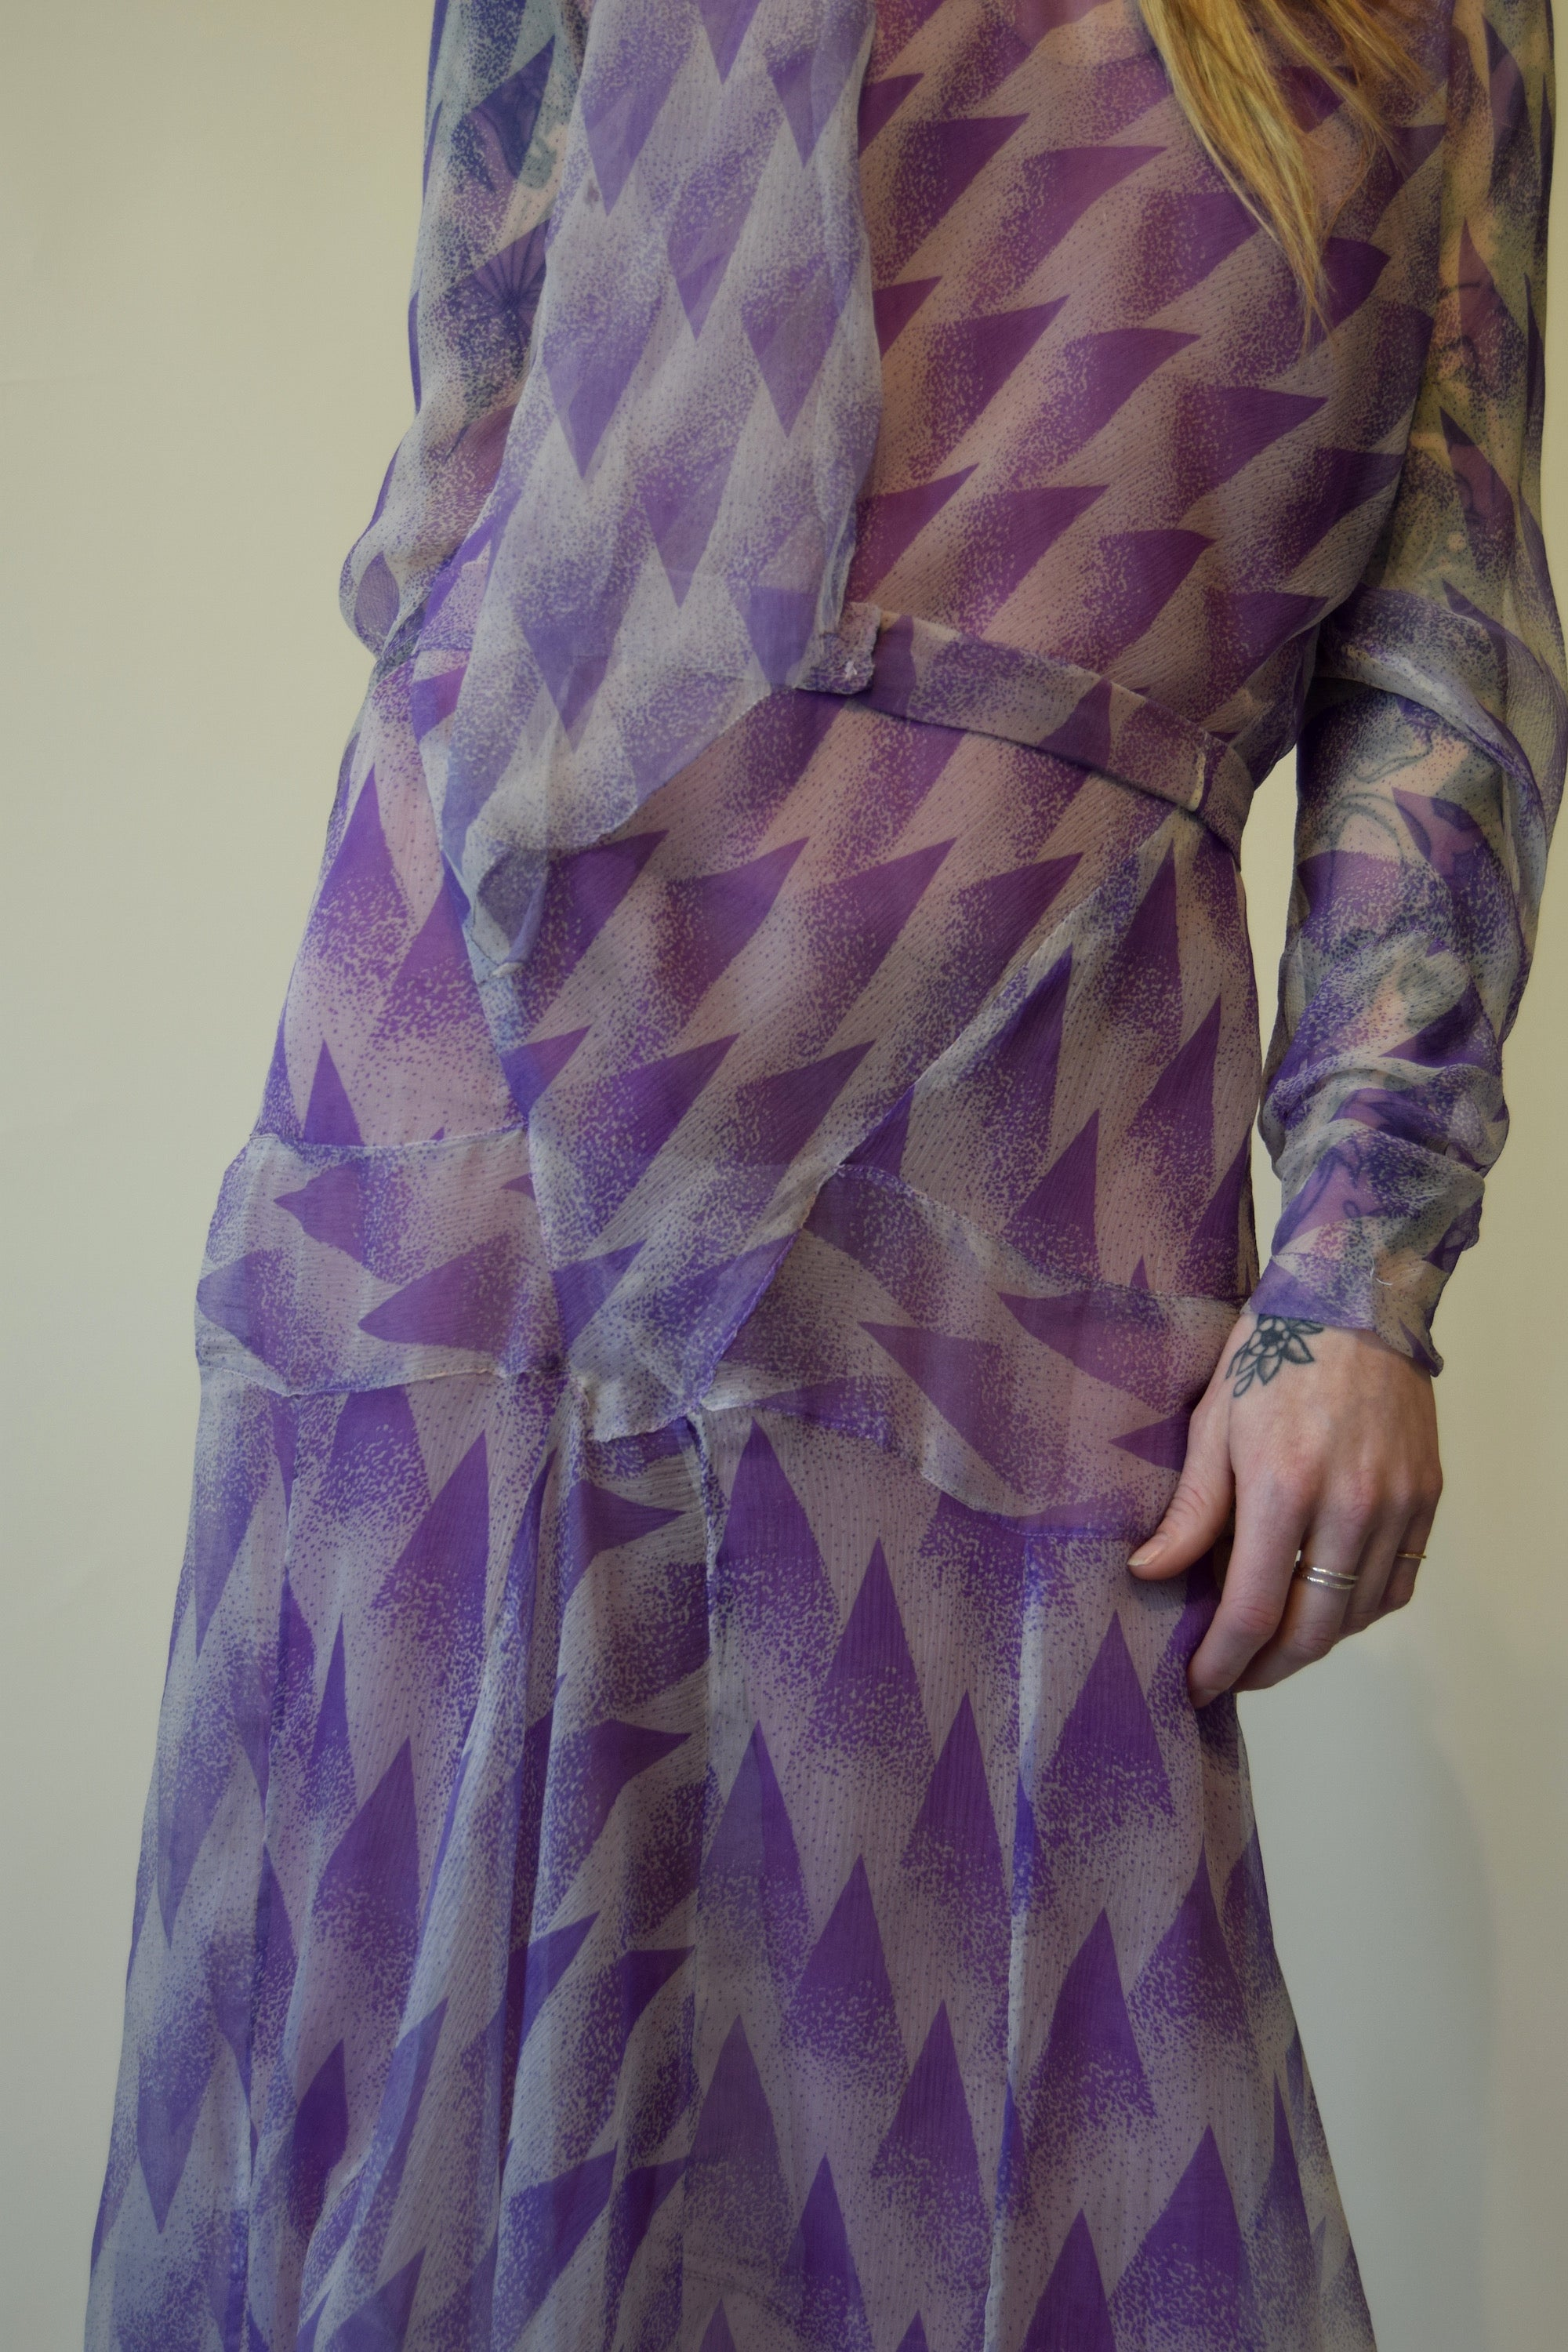 Vintage 1920's Art Deco Purple Patterned Silk Dress FREE SHIPPING TO THE U.S.